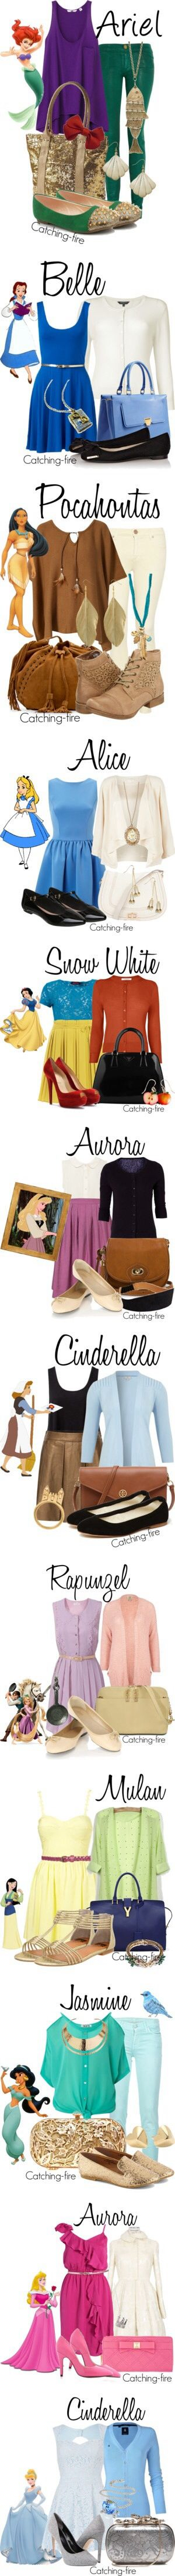 The princesses everyday outfits in real life!